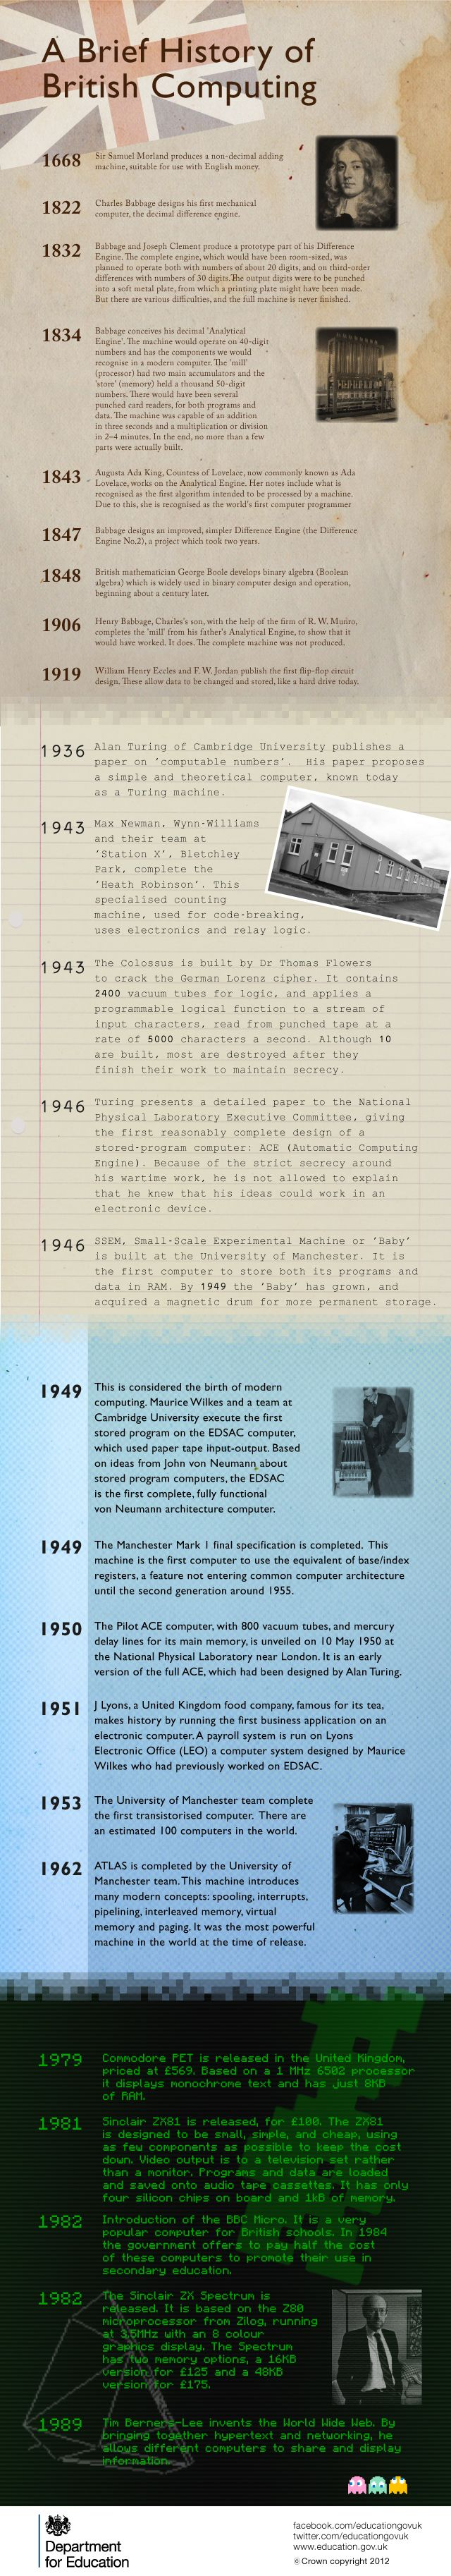 A brief history of computer science.